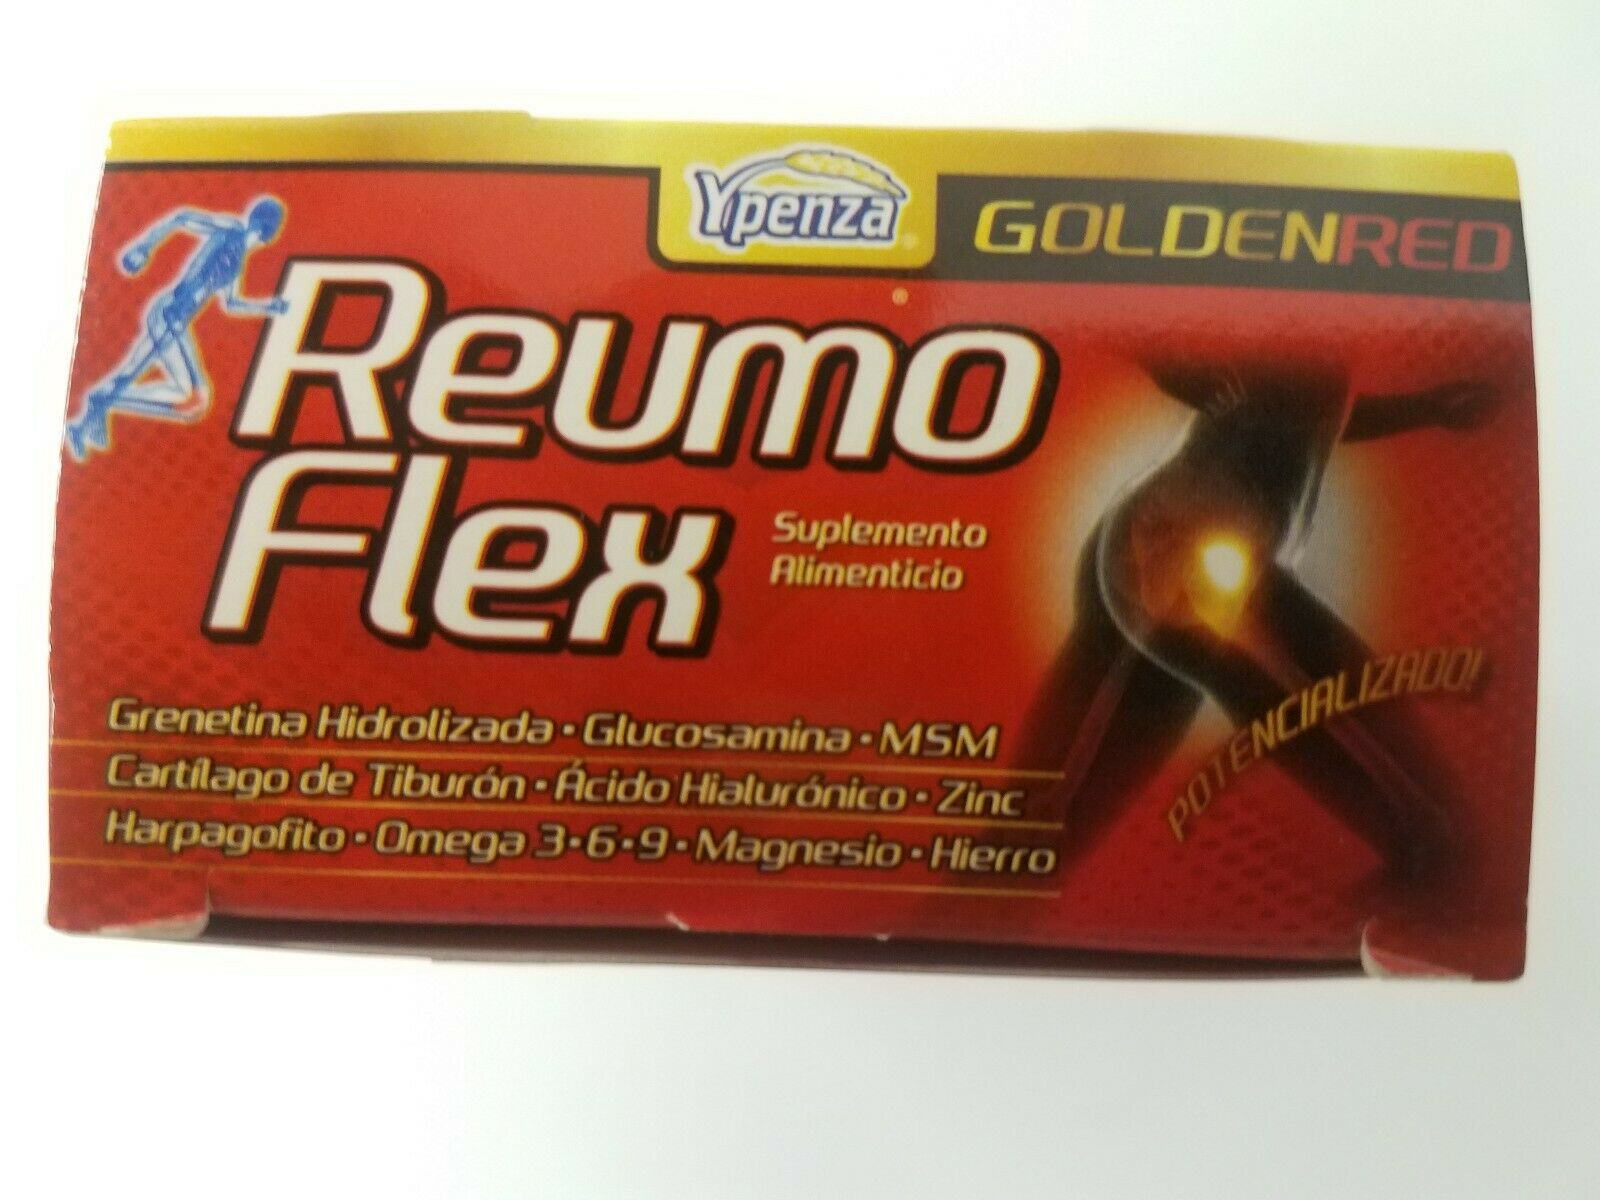 Reumo Flex GOLDEN RED Relieves Joints Artritis and Ciatica pain Articulaciones 4